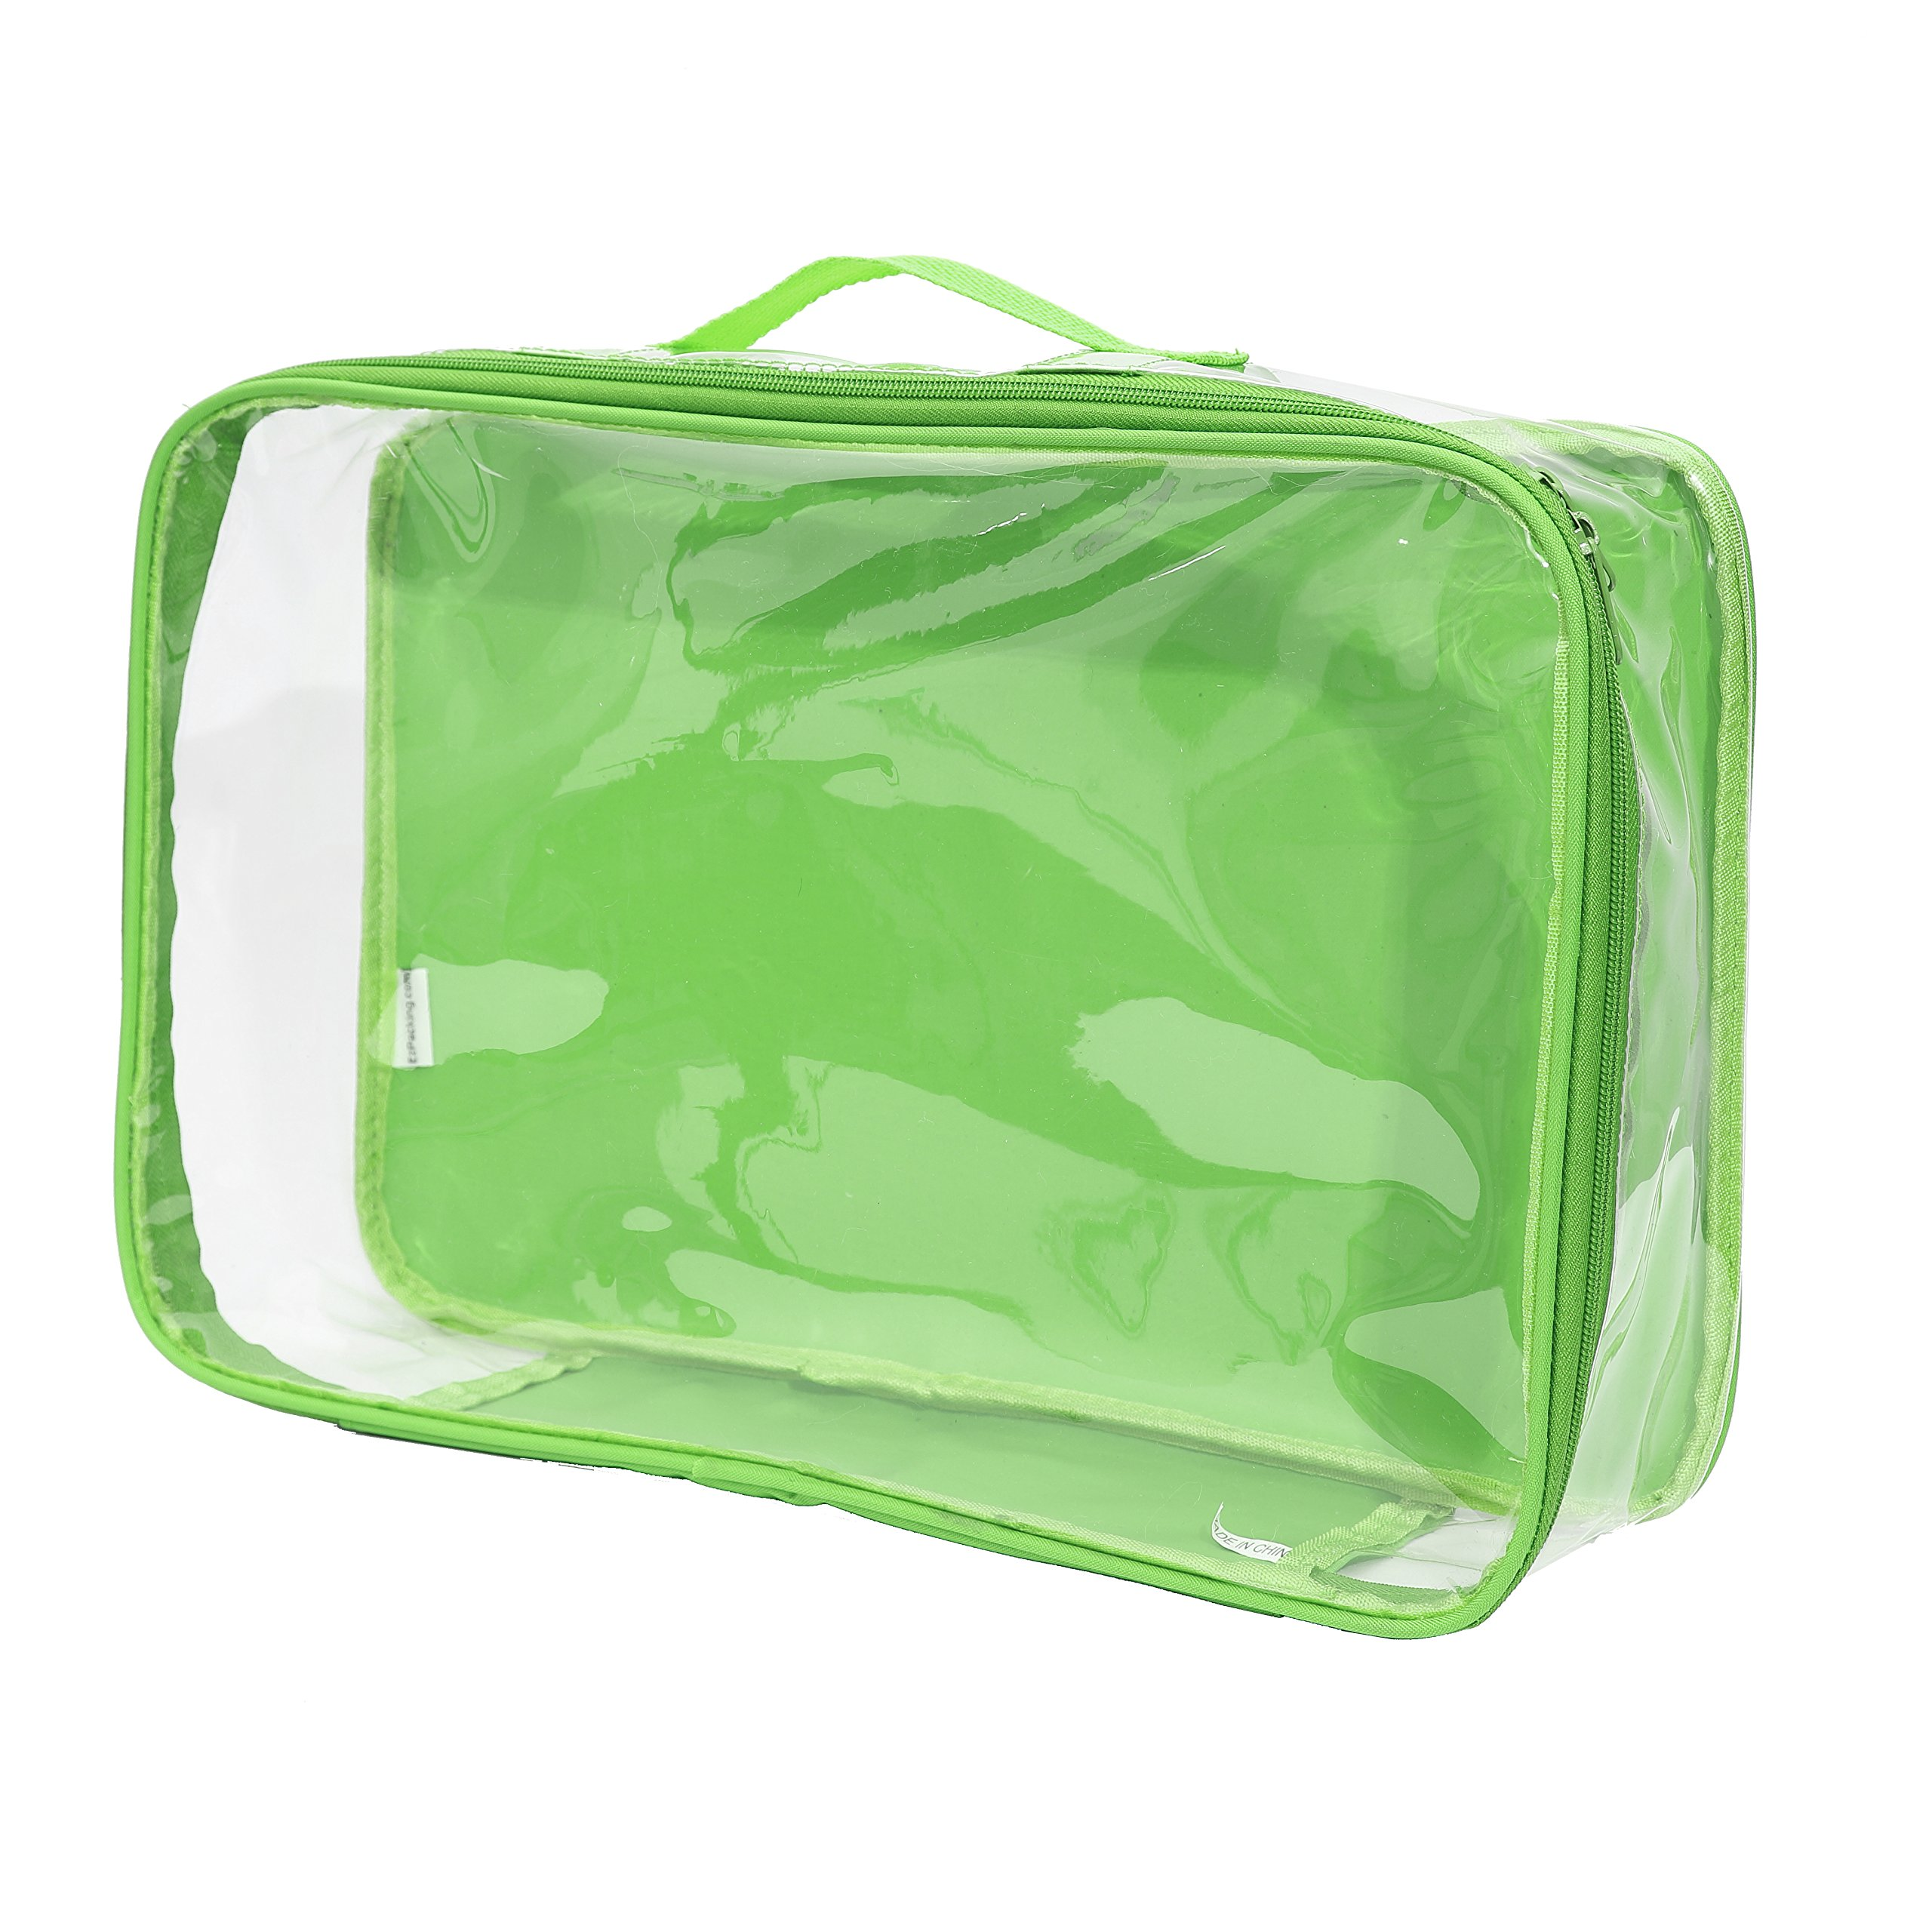 Large Packing Cube/Perfect for Packing Clothes Into Suitcase Or Closet for Moth Protection (Green)